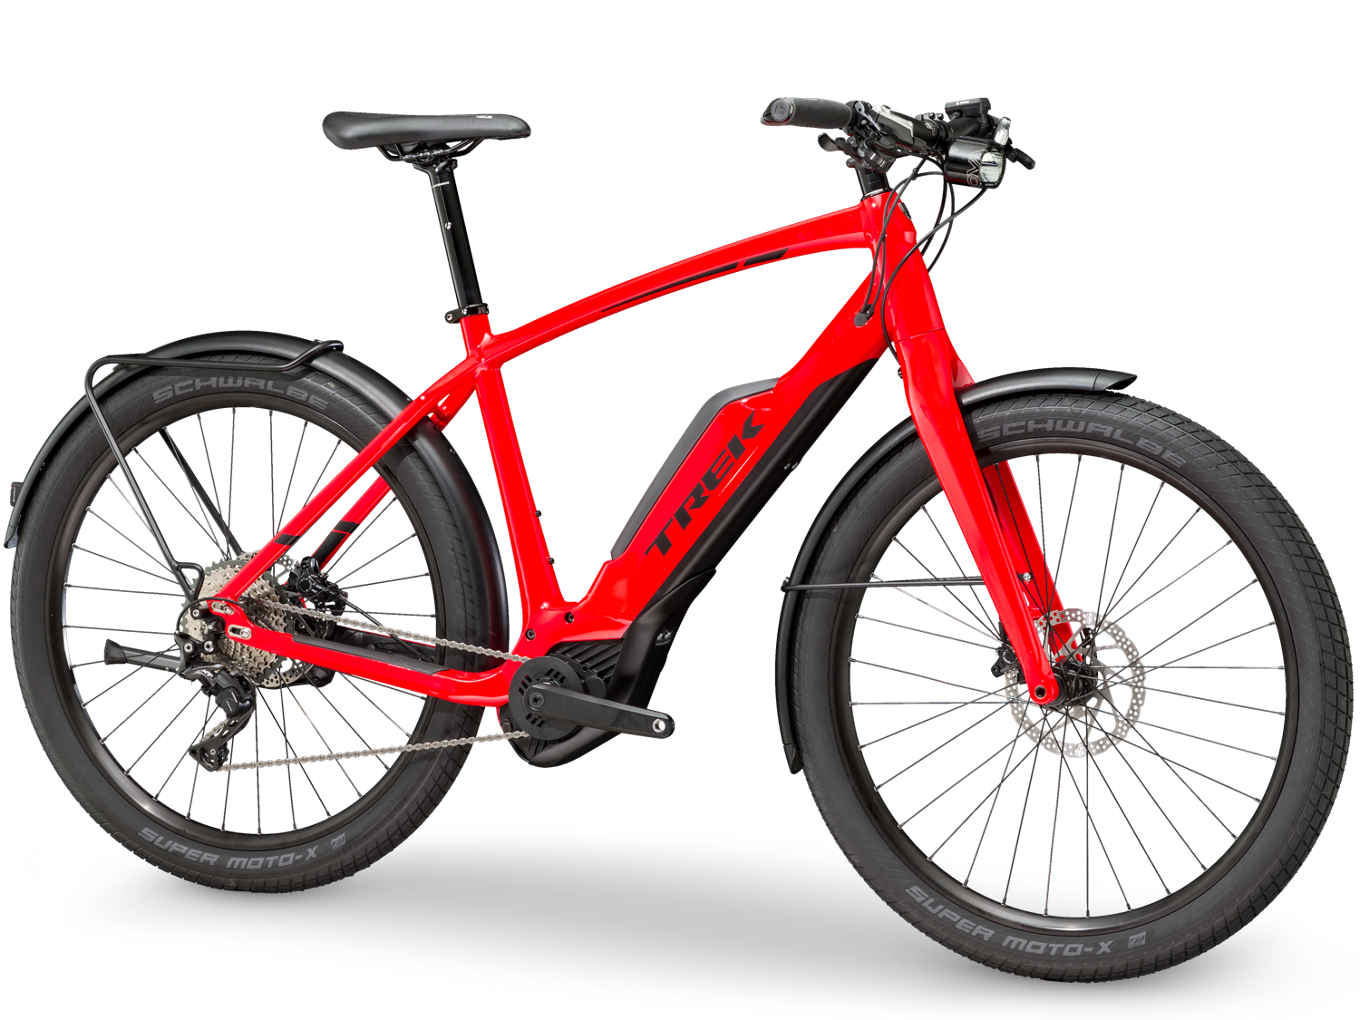 2018 Electric Bicycles Guide - Trinity Cyclery - www